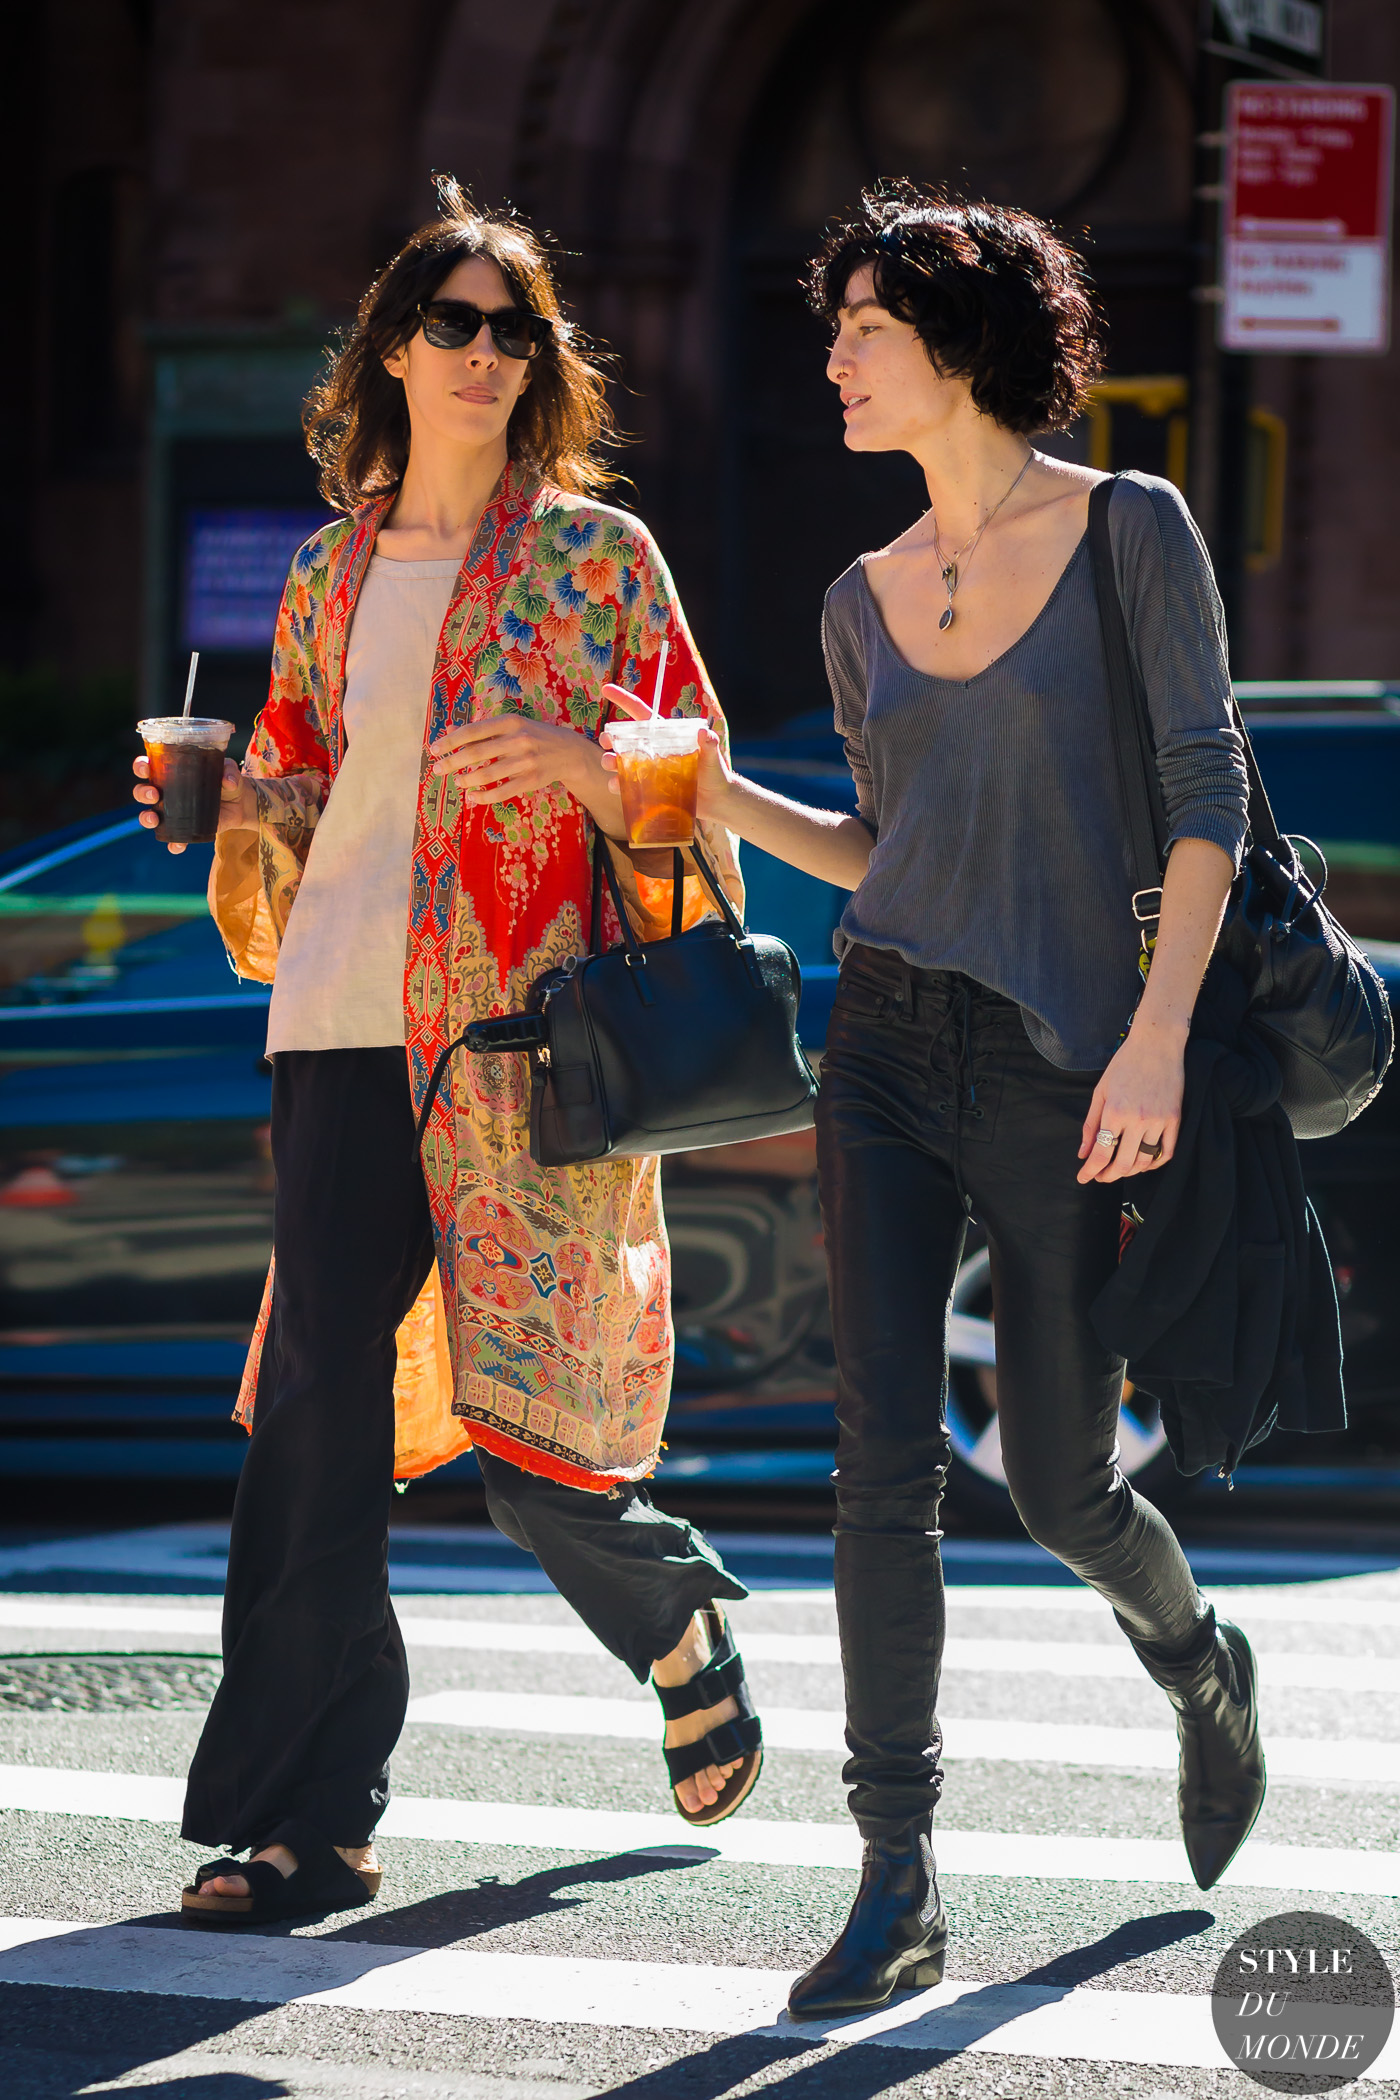 Jamie Bochert and Heather Kemesky by STYLEDUMONDE Street Style Fashion Photography